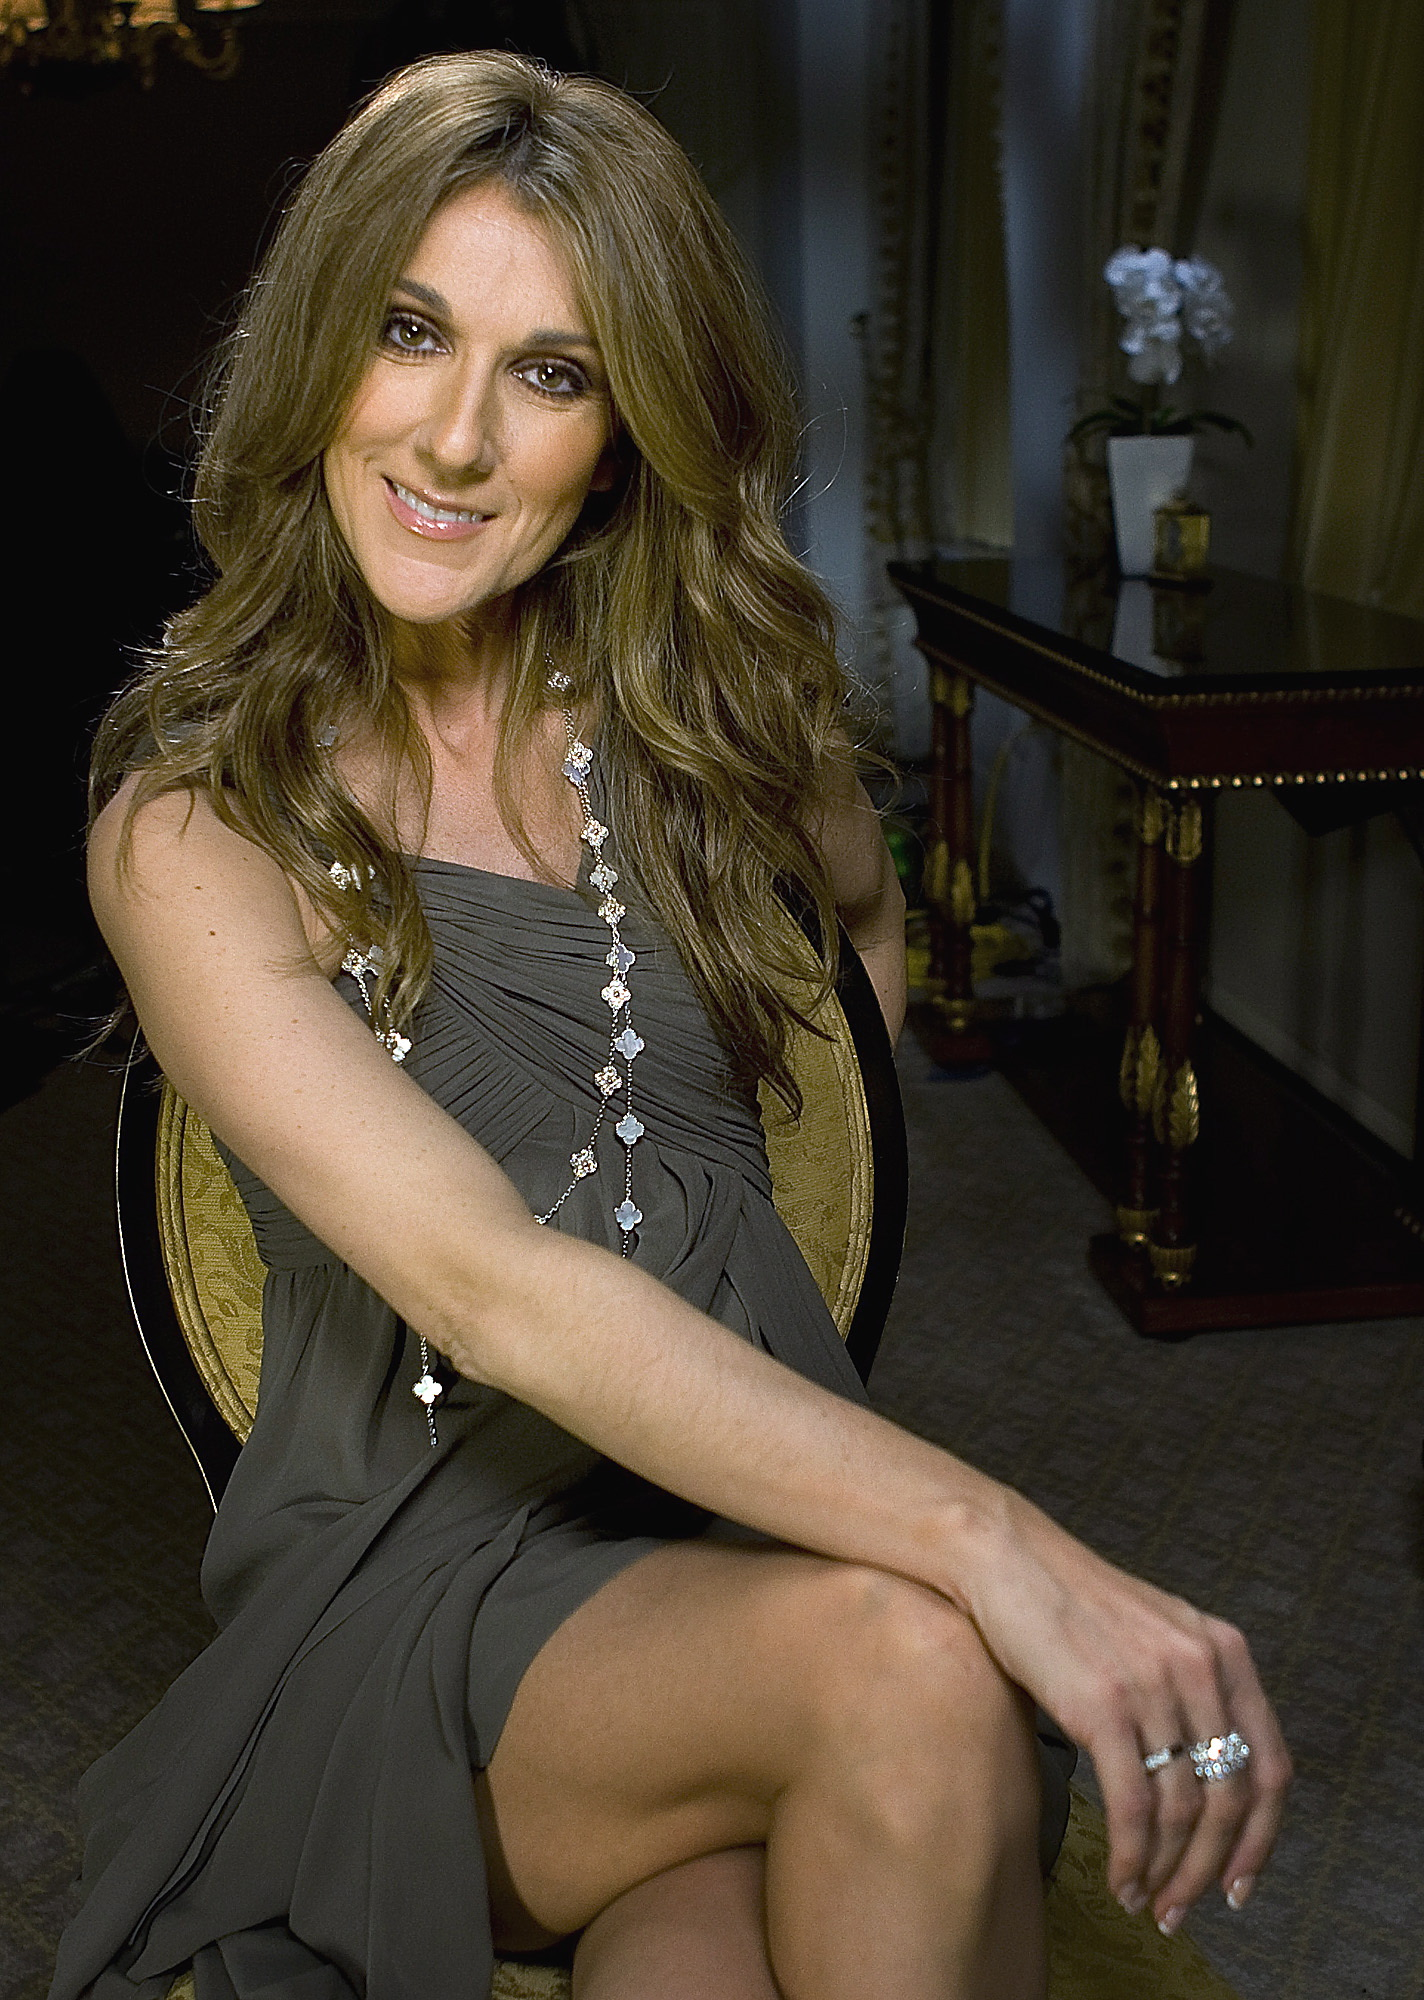 Celine Dion Photo 70 Of 164 Pics Wallpaper Photo 191585 Theplace2